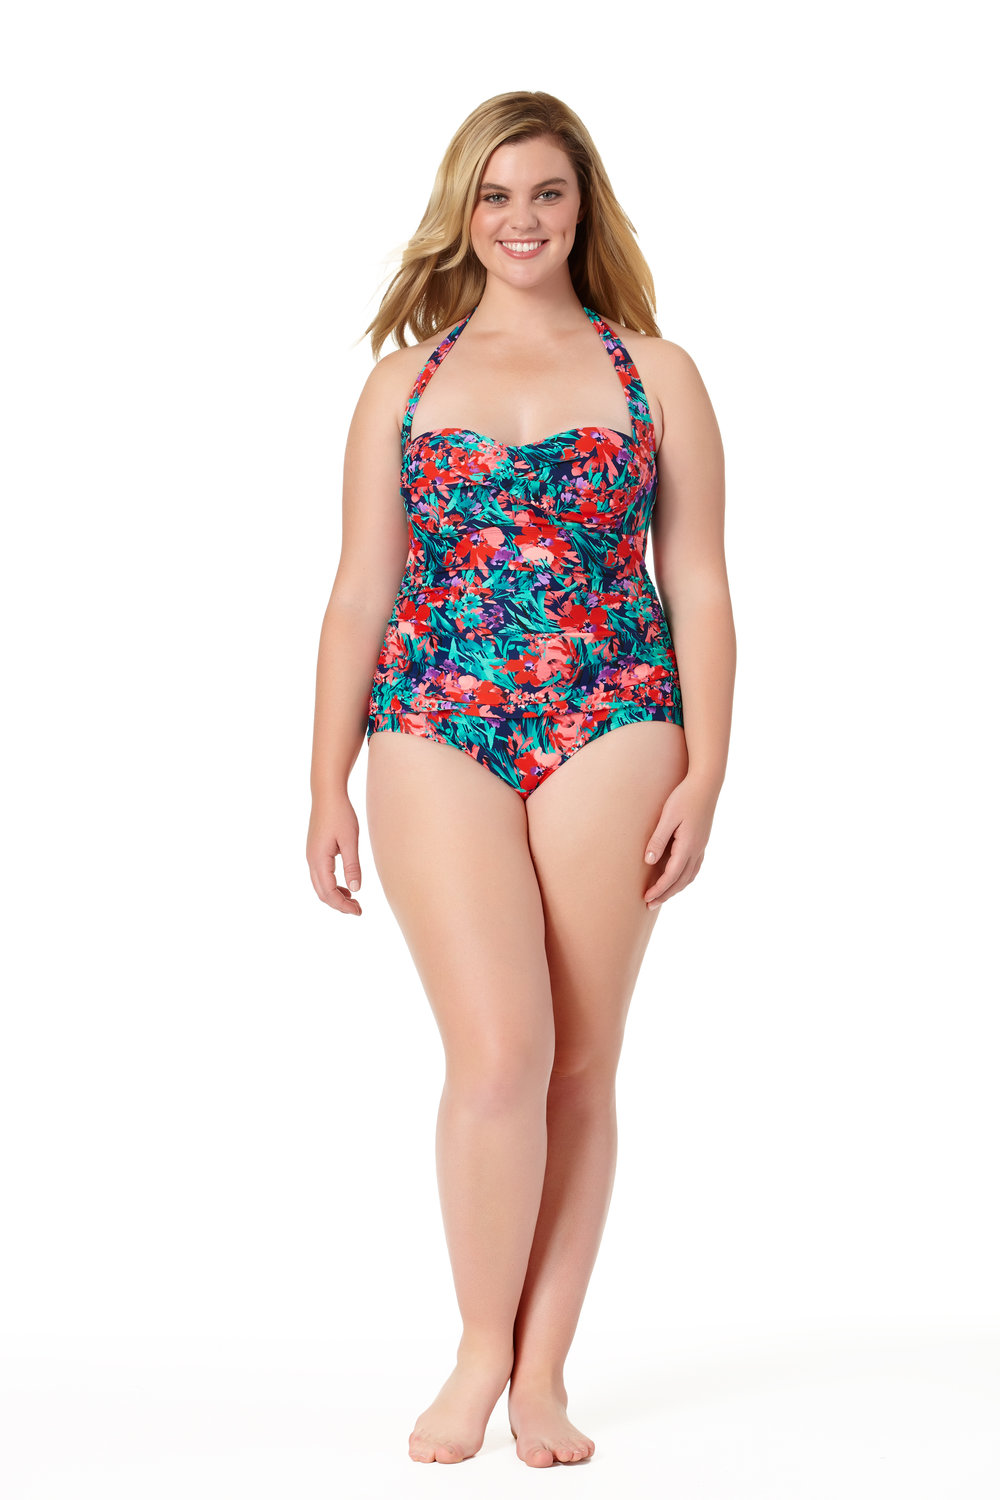 STYLE # CTP17103 - Summer Dream One-PieceBUY NOW FROM WALMART